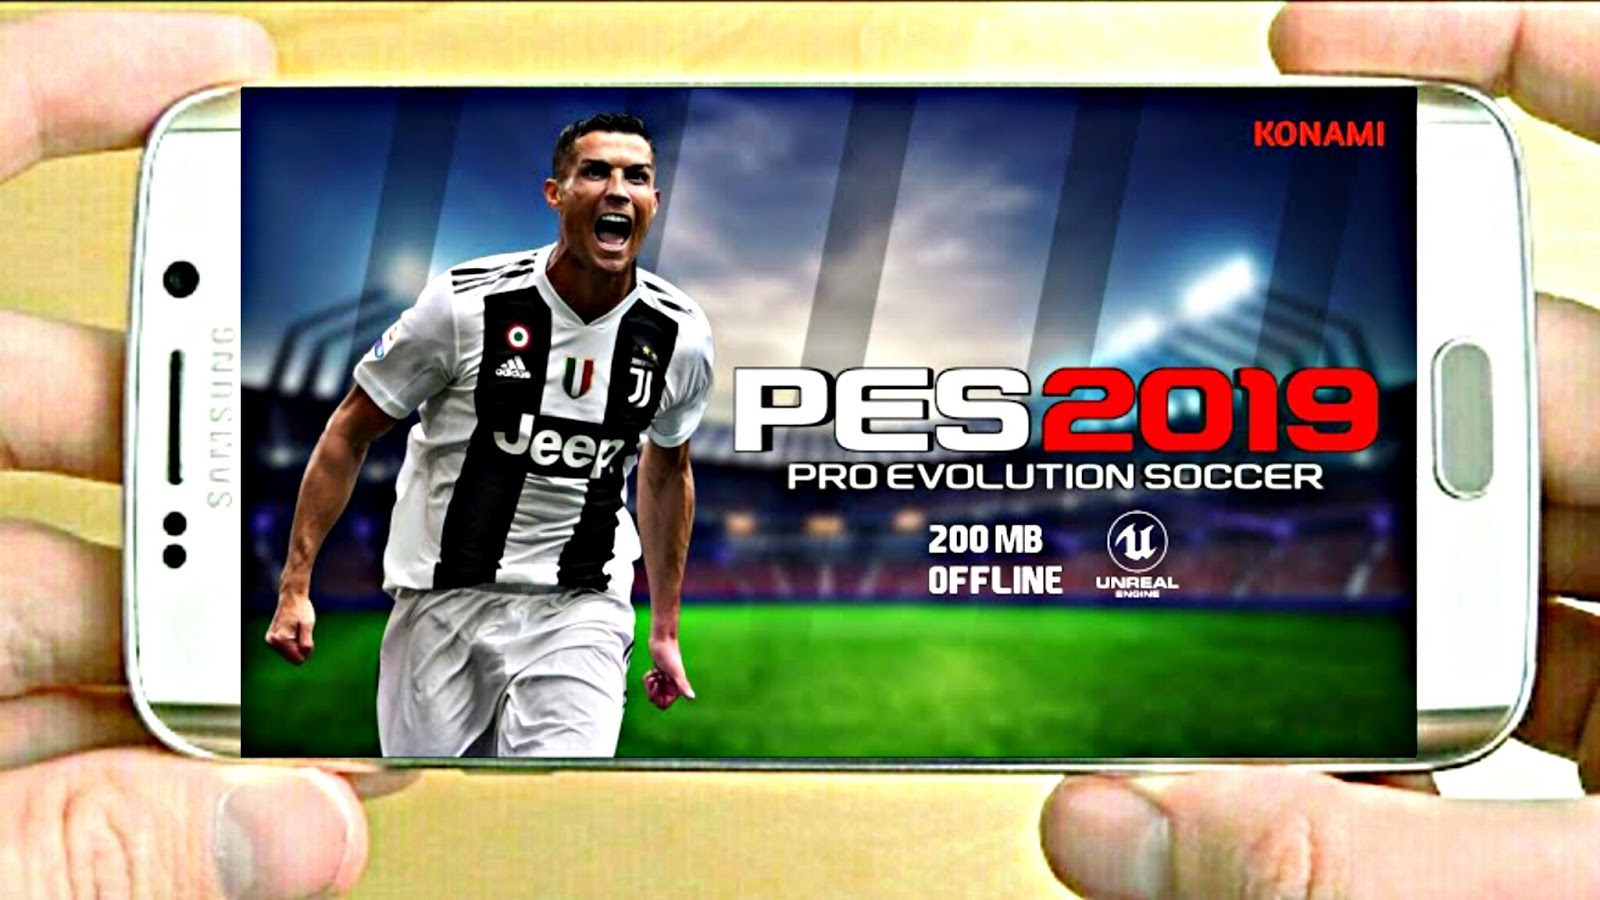 Download pes 2019 android offline 200mb | PES 19 PSP Game